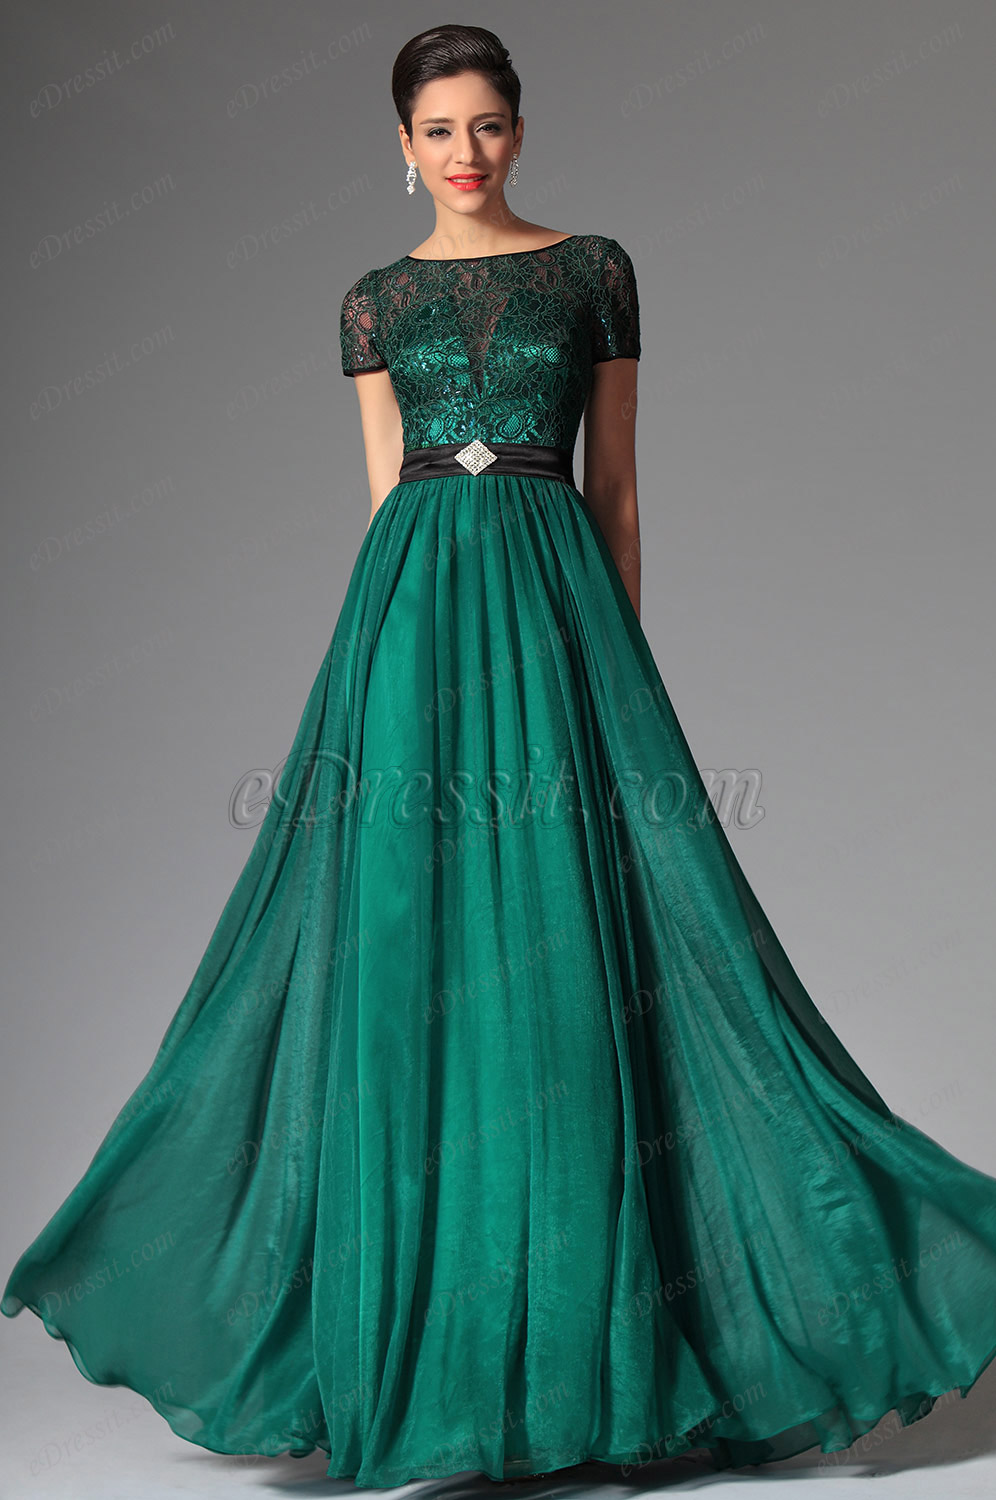 Ball gown prom dresses 2014 -  Green Evening Dress Green Evening Gown Best Gowns And Dresses Ideas Reviews